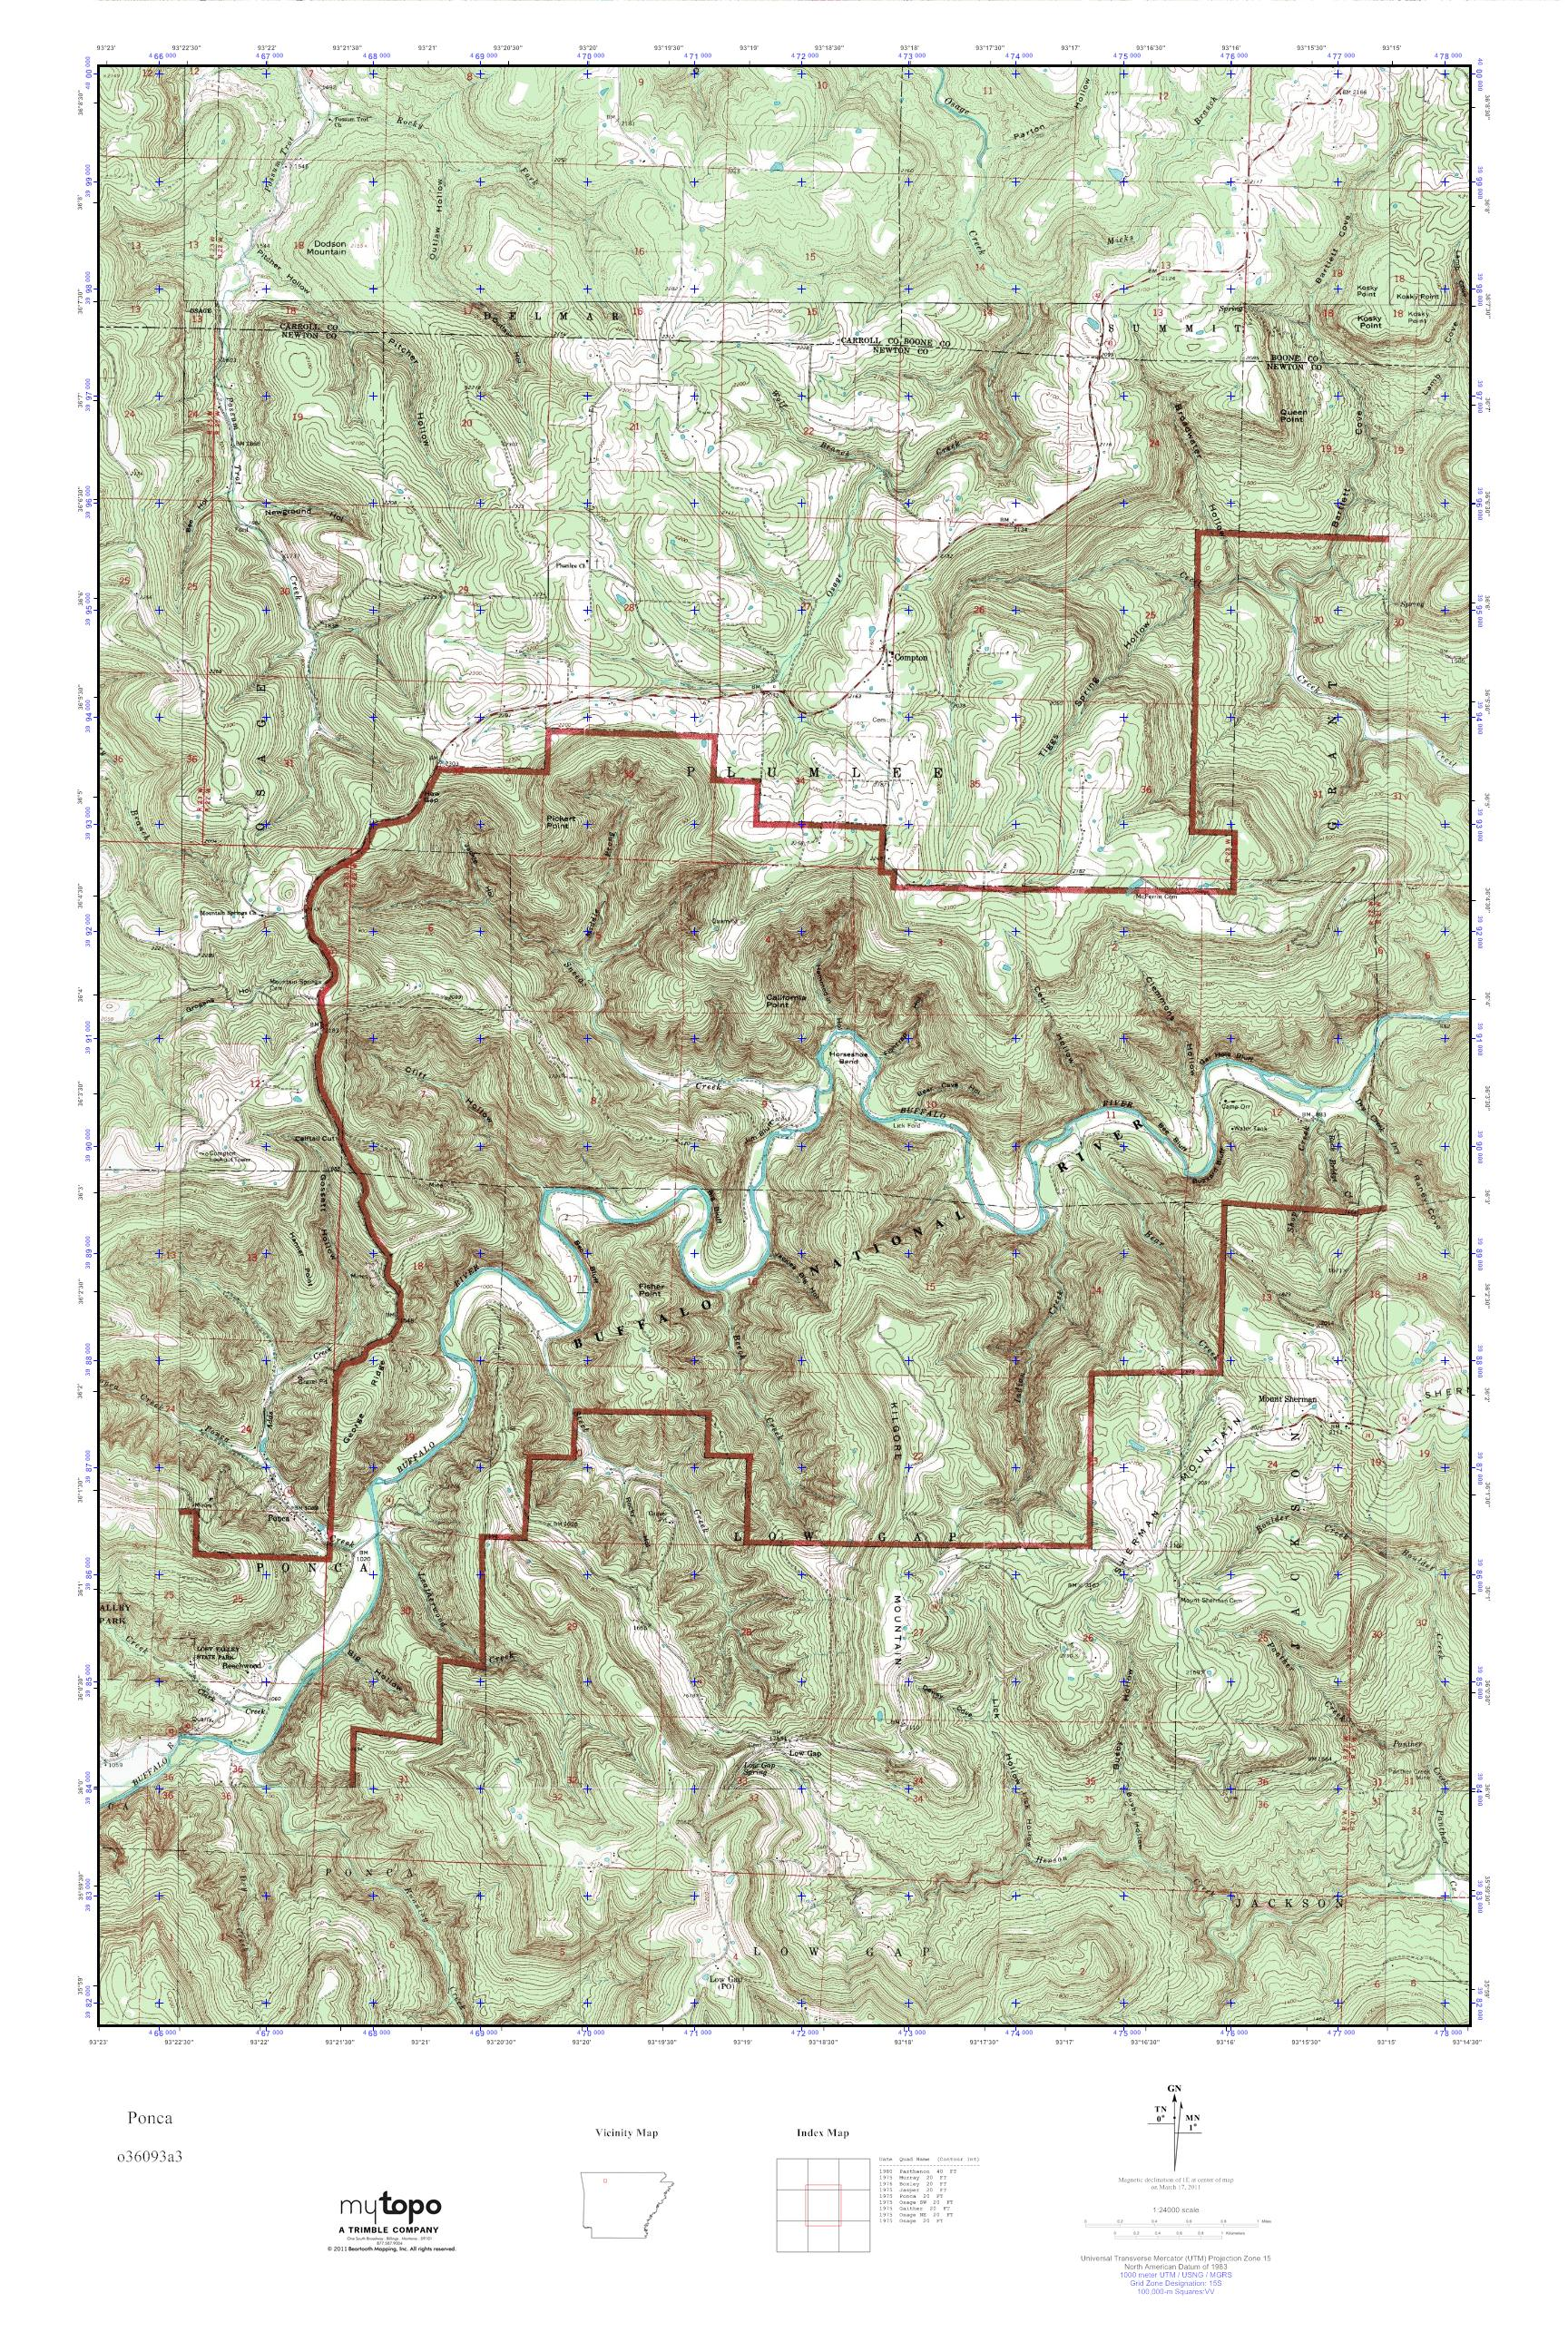 Ponca Arkansas Map.Mytopo Ponca Arkansas Usgs Quad Topo Map